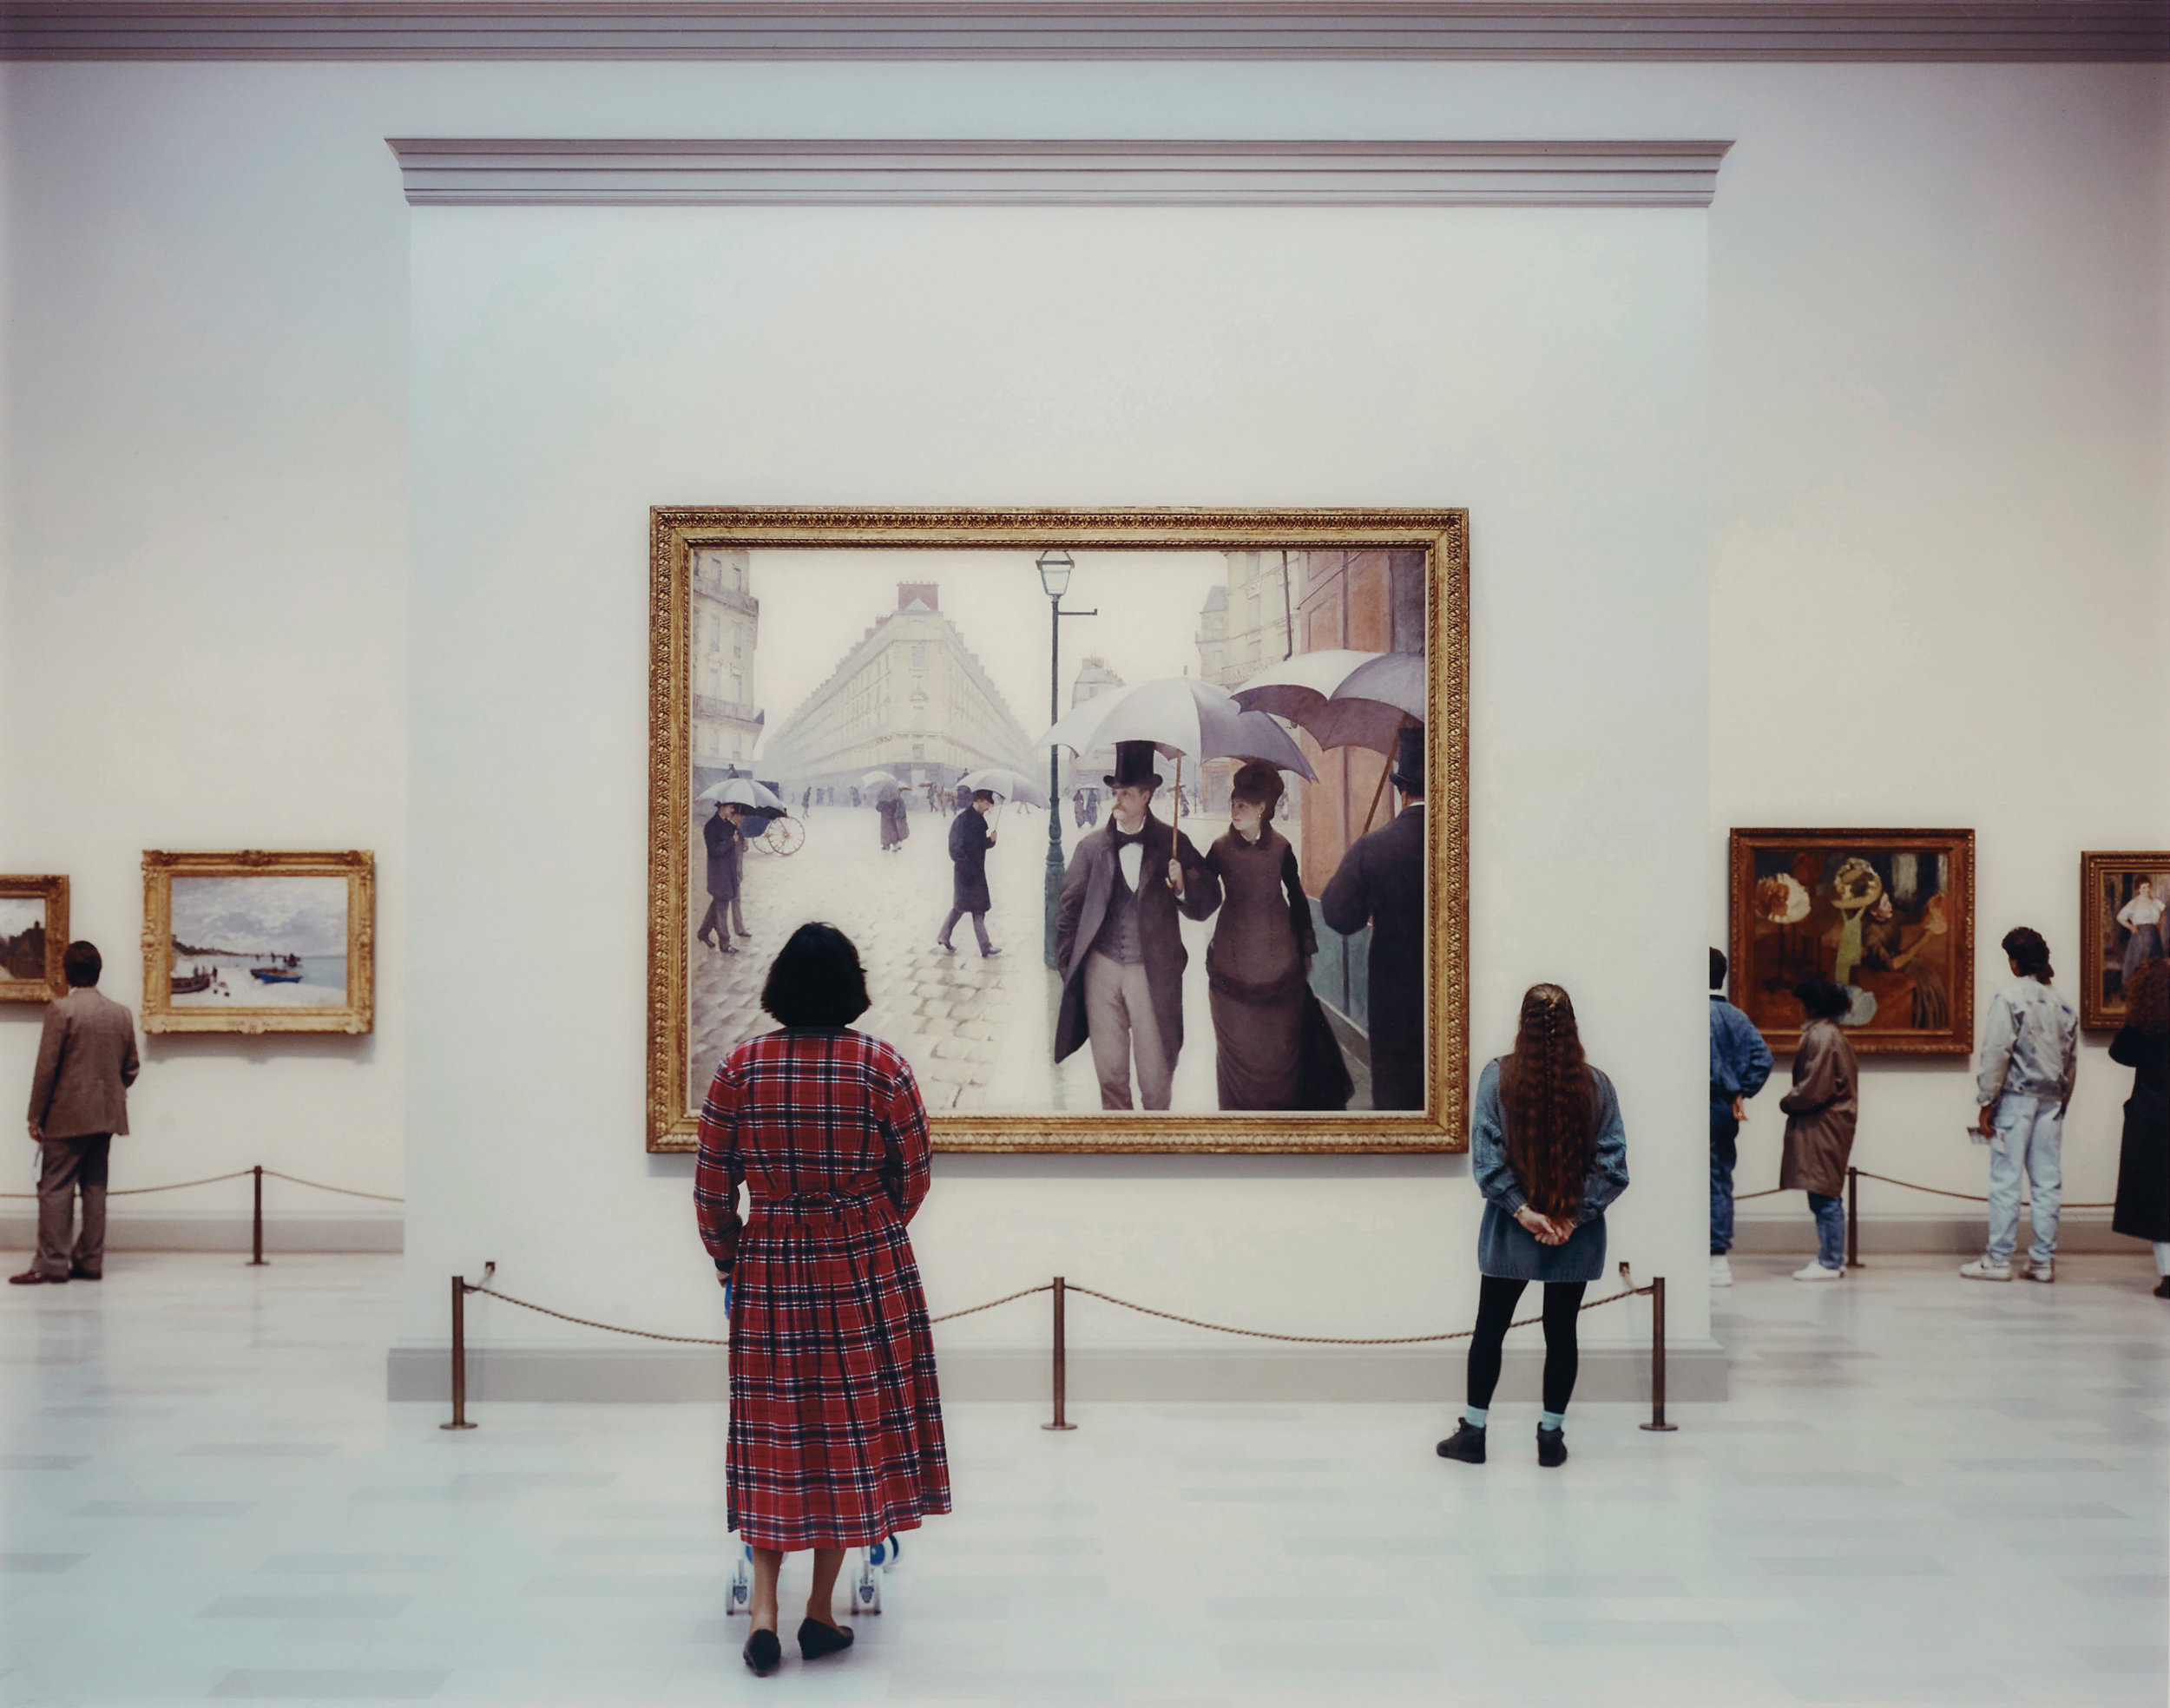 Thomas Struth,  Art Institute of Chicago II,  chromeogenic print 72x86 inches